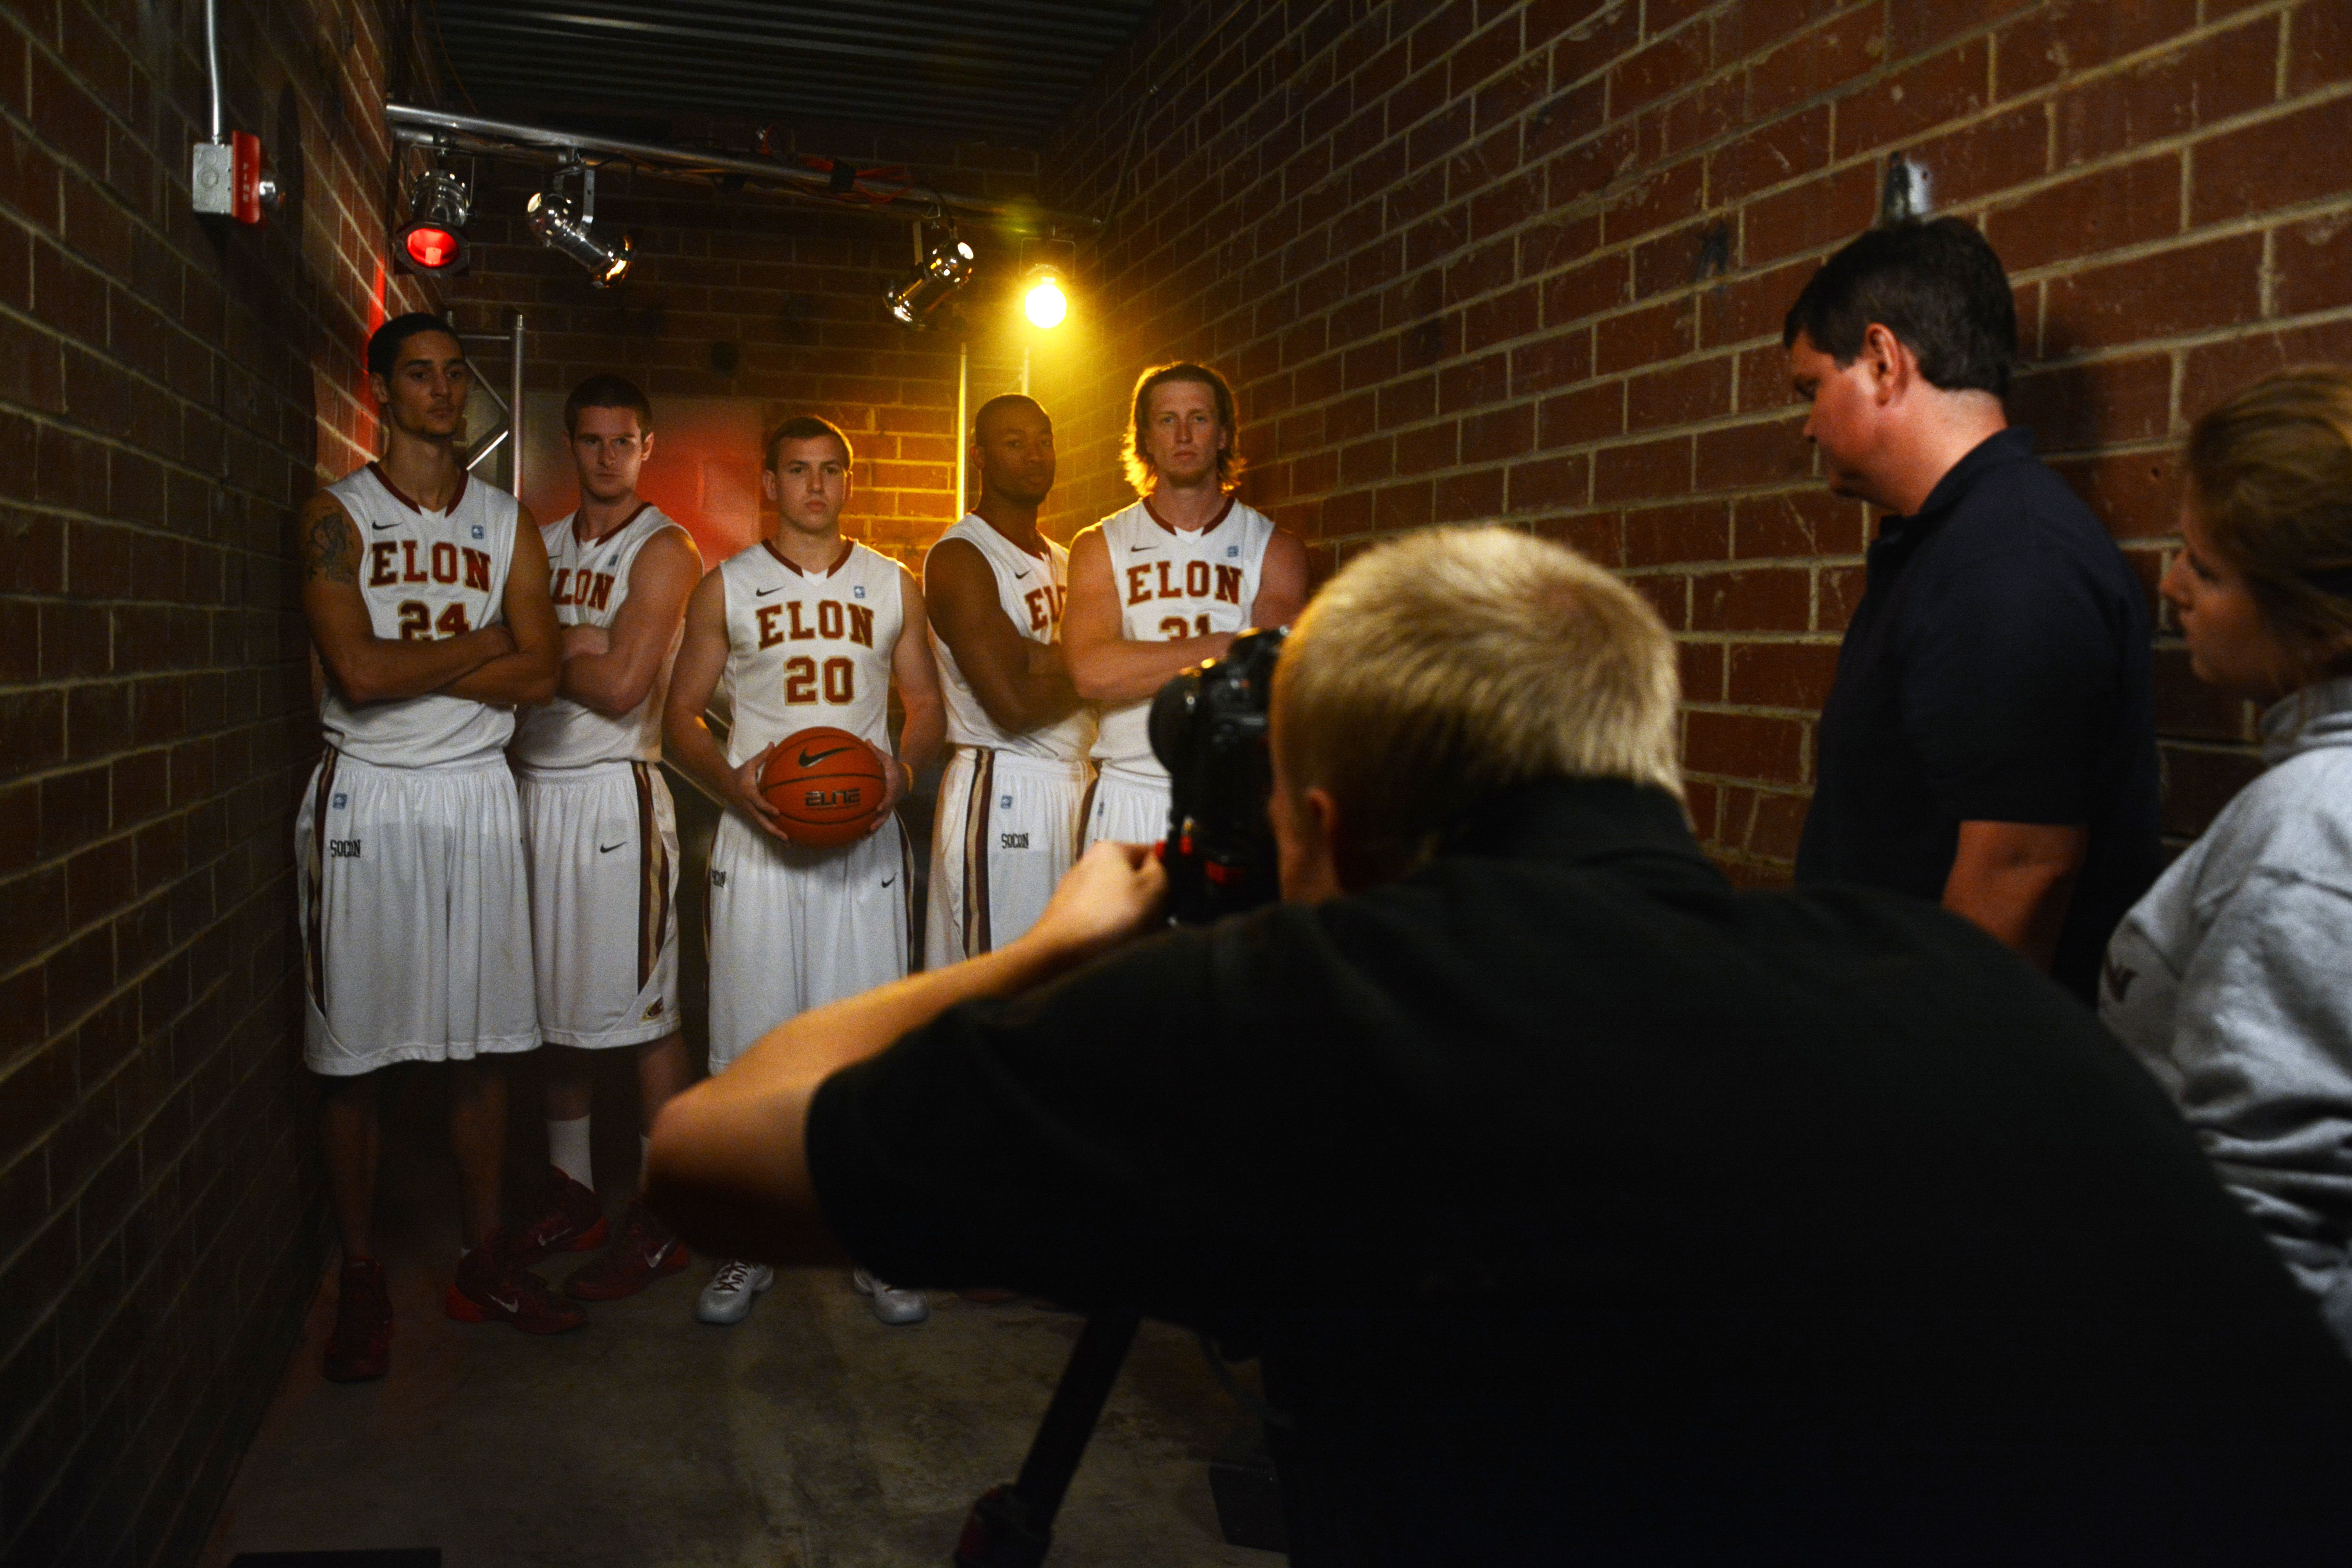 Here S A Behind The Scenes Look At This Week S Shoot For The Elon Men S Basketball Team 2013 2014 Intro Video Mak University Athlete Basketball Teams Athlete